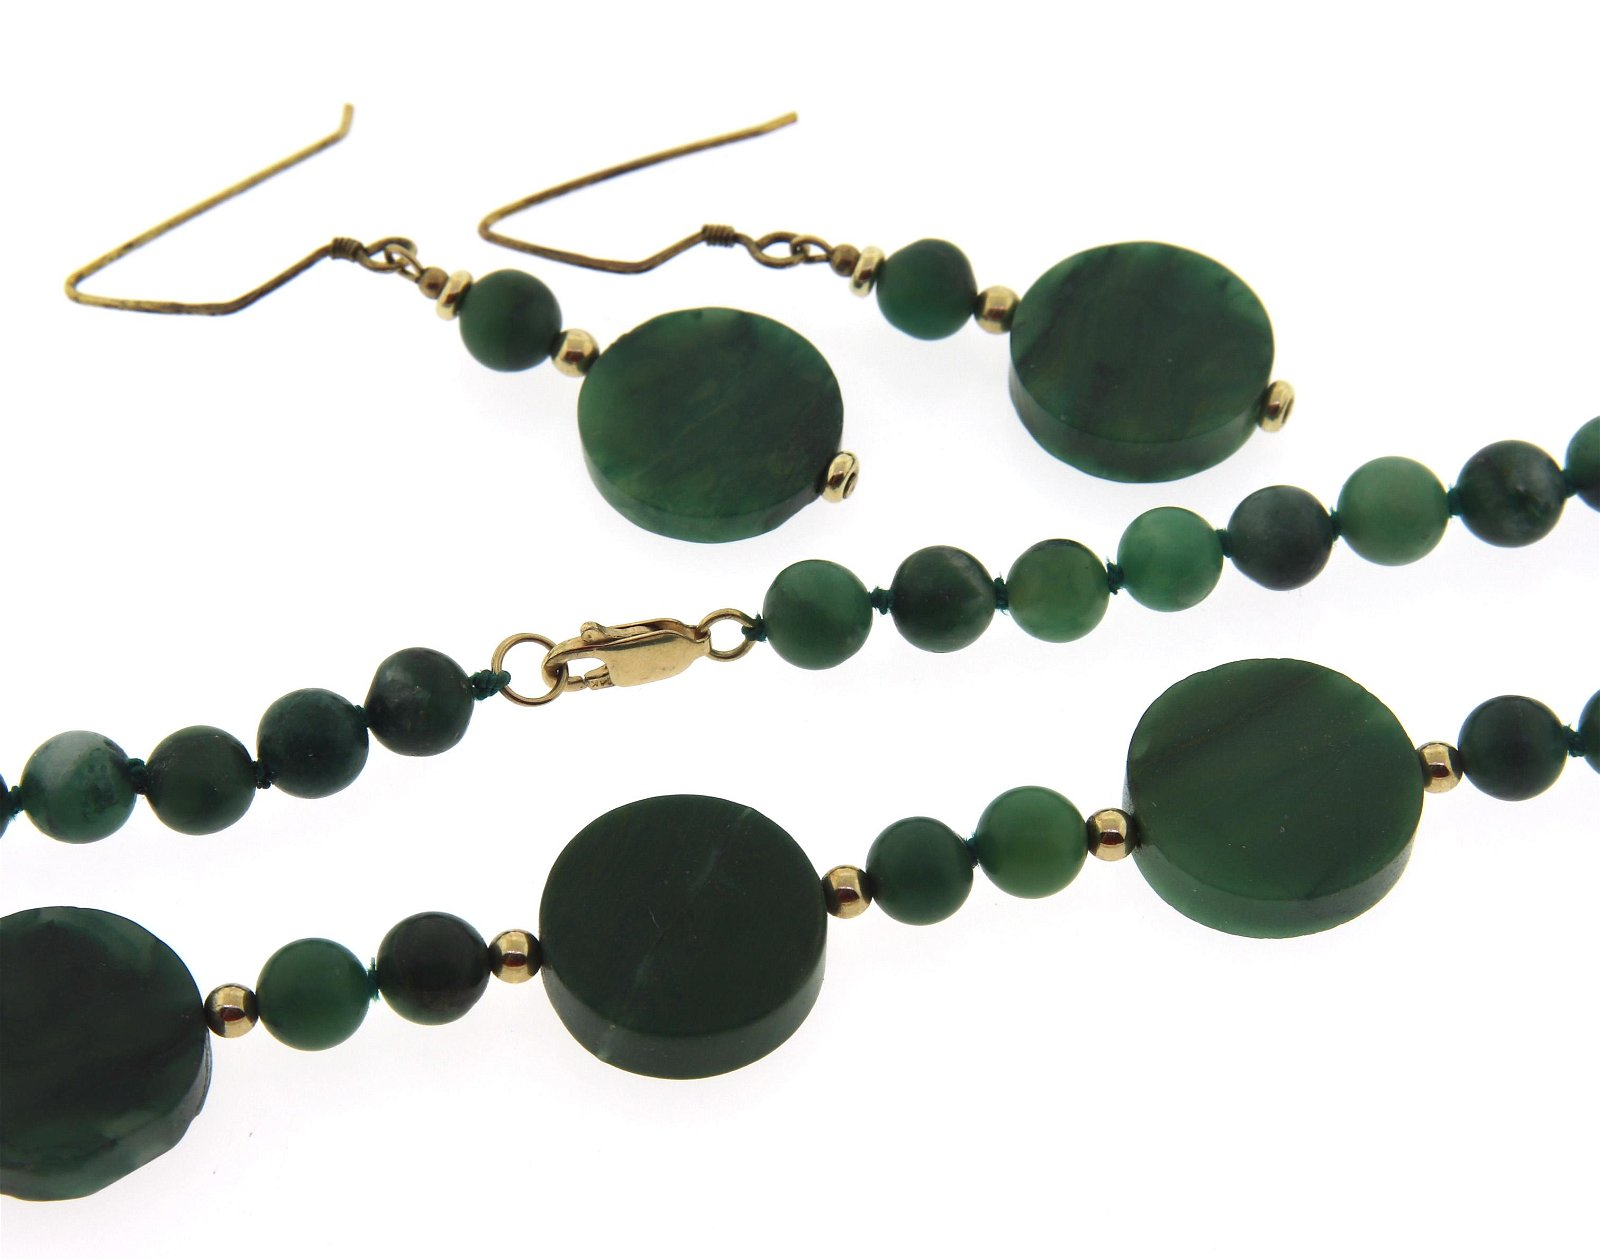 Green Agate Bead Necklace and Dangle Earrings